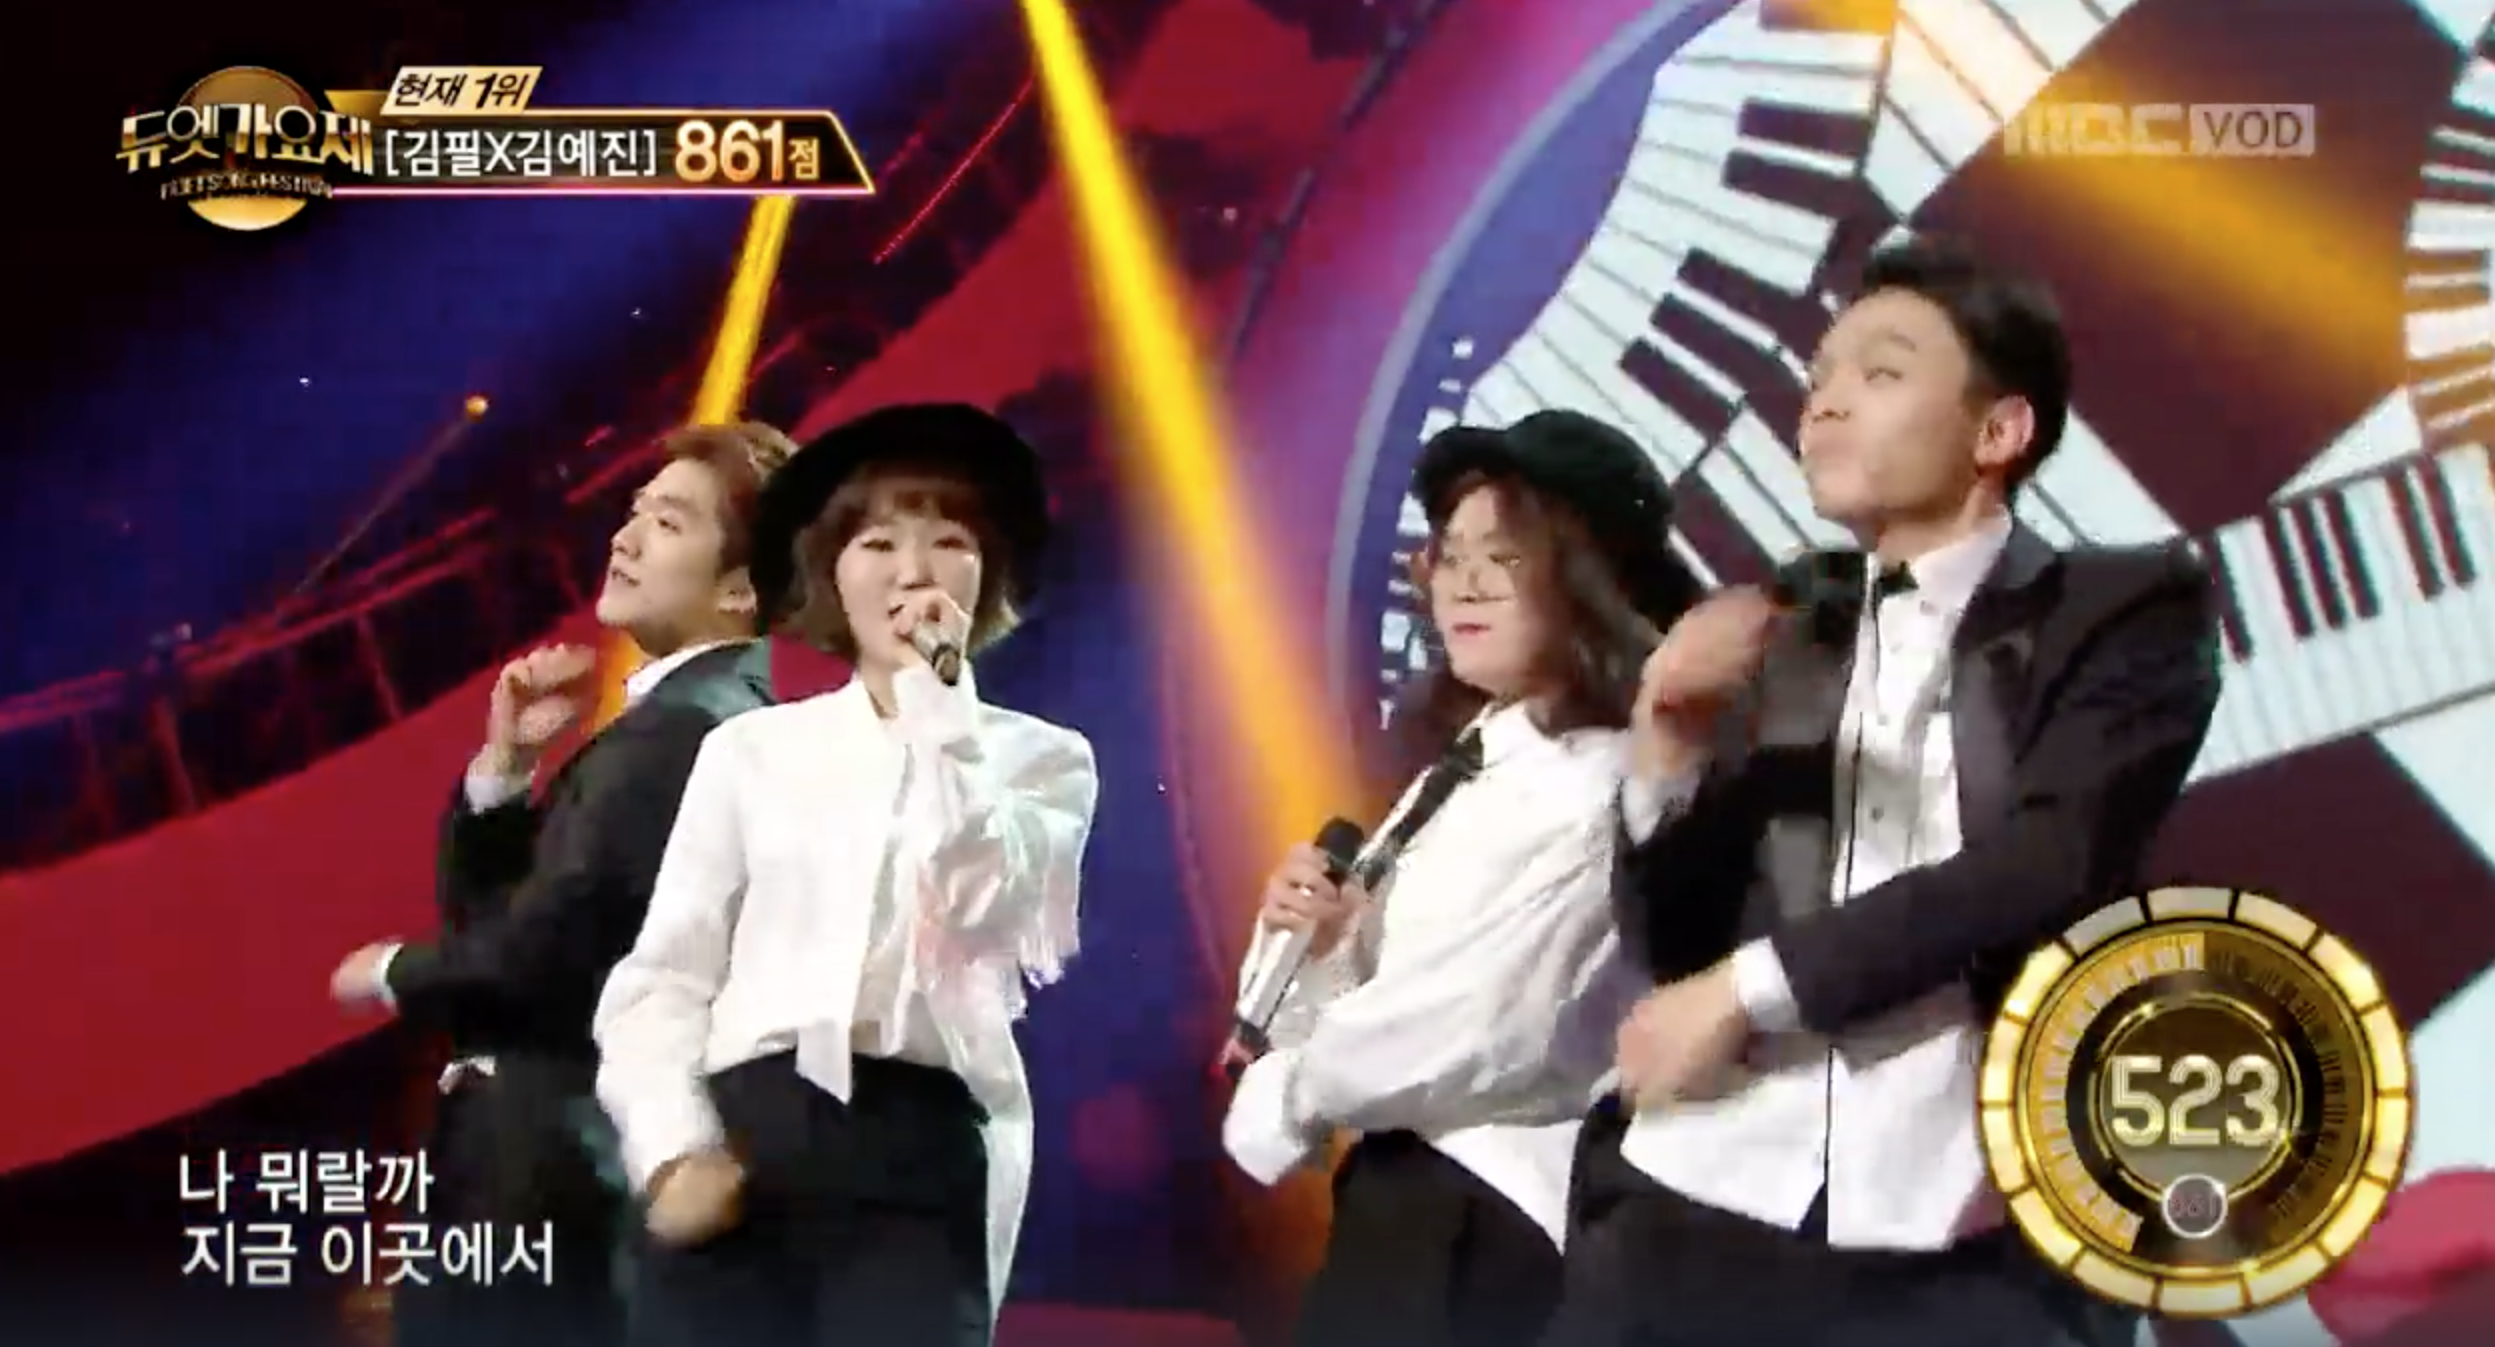 """Watch: Akdong Musician's Lee Soo Hyun Covers MAMAMOO's """"Piano Man"""" With Her Partner On """"Duet Song Festival"""""""